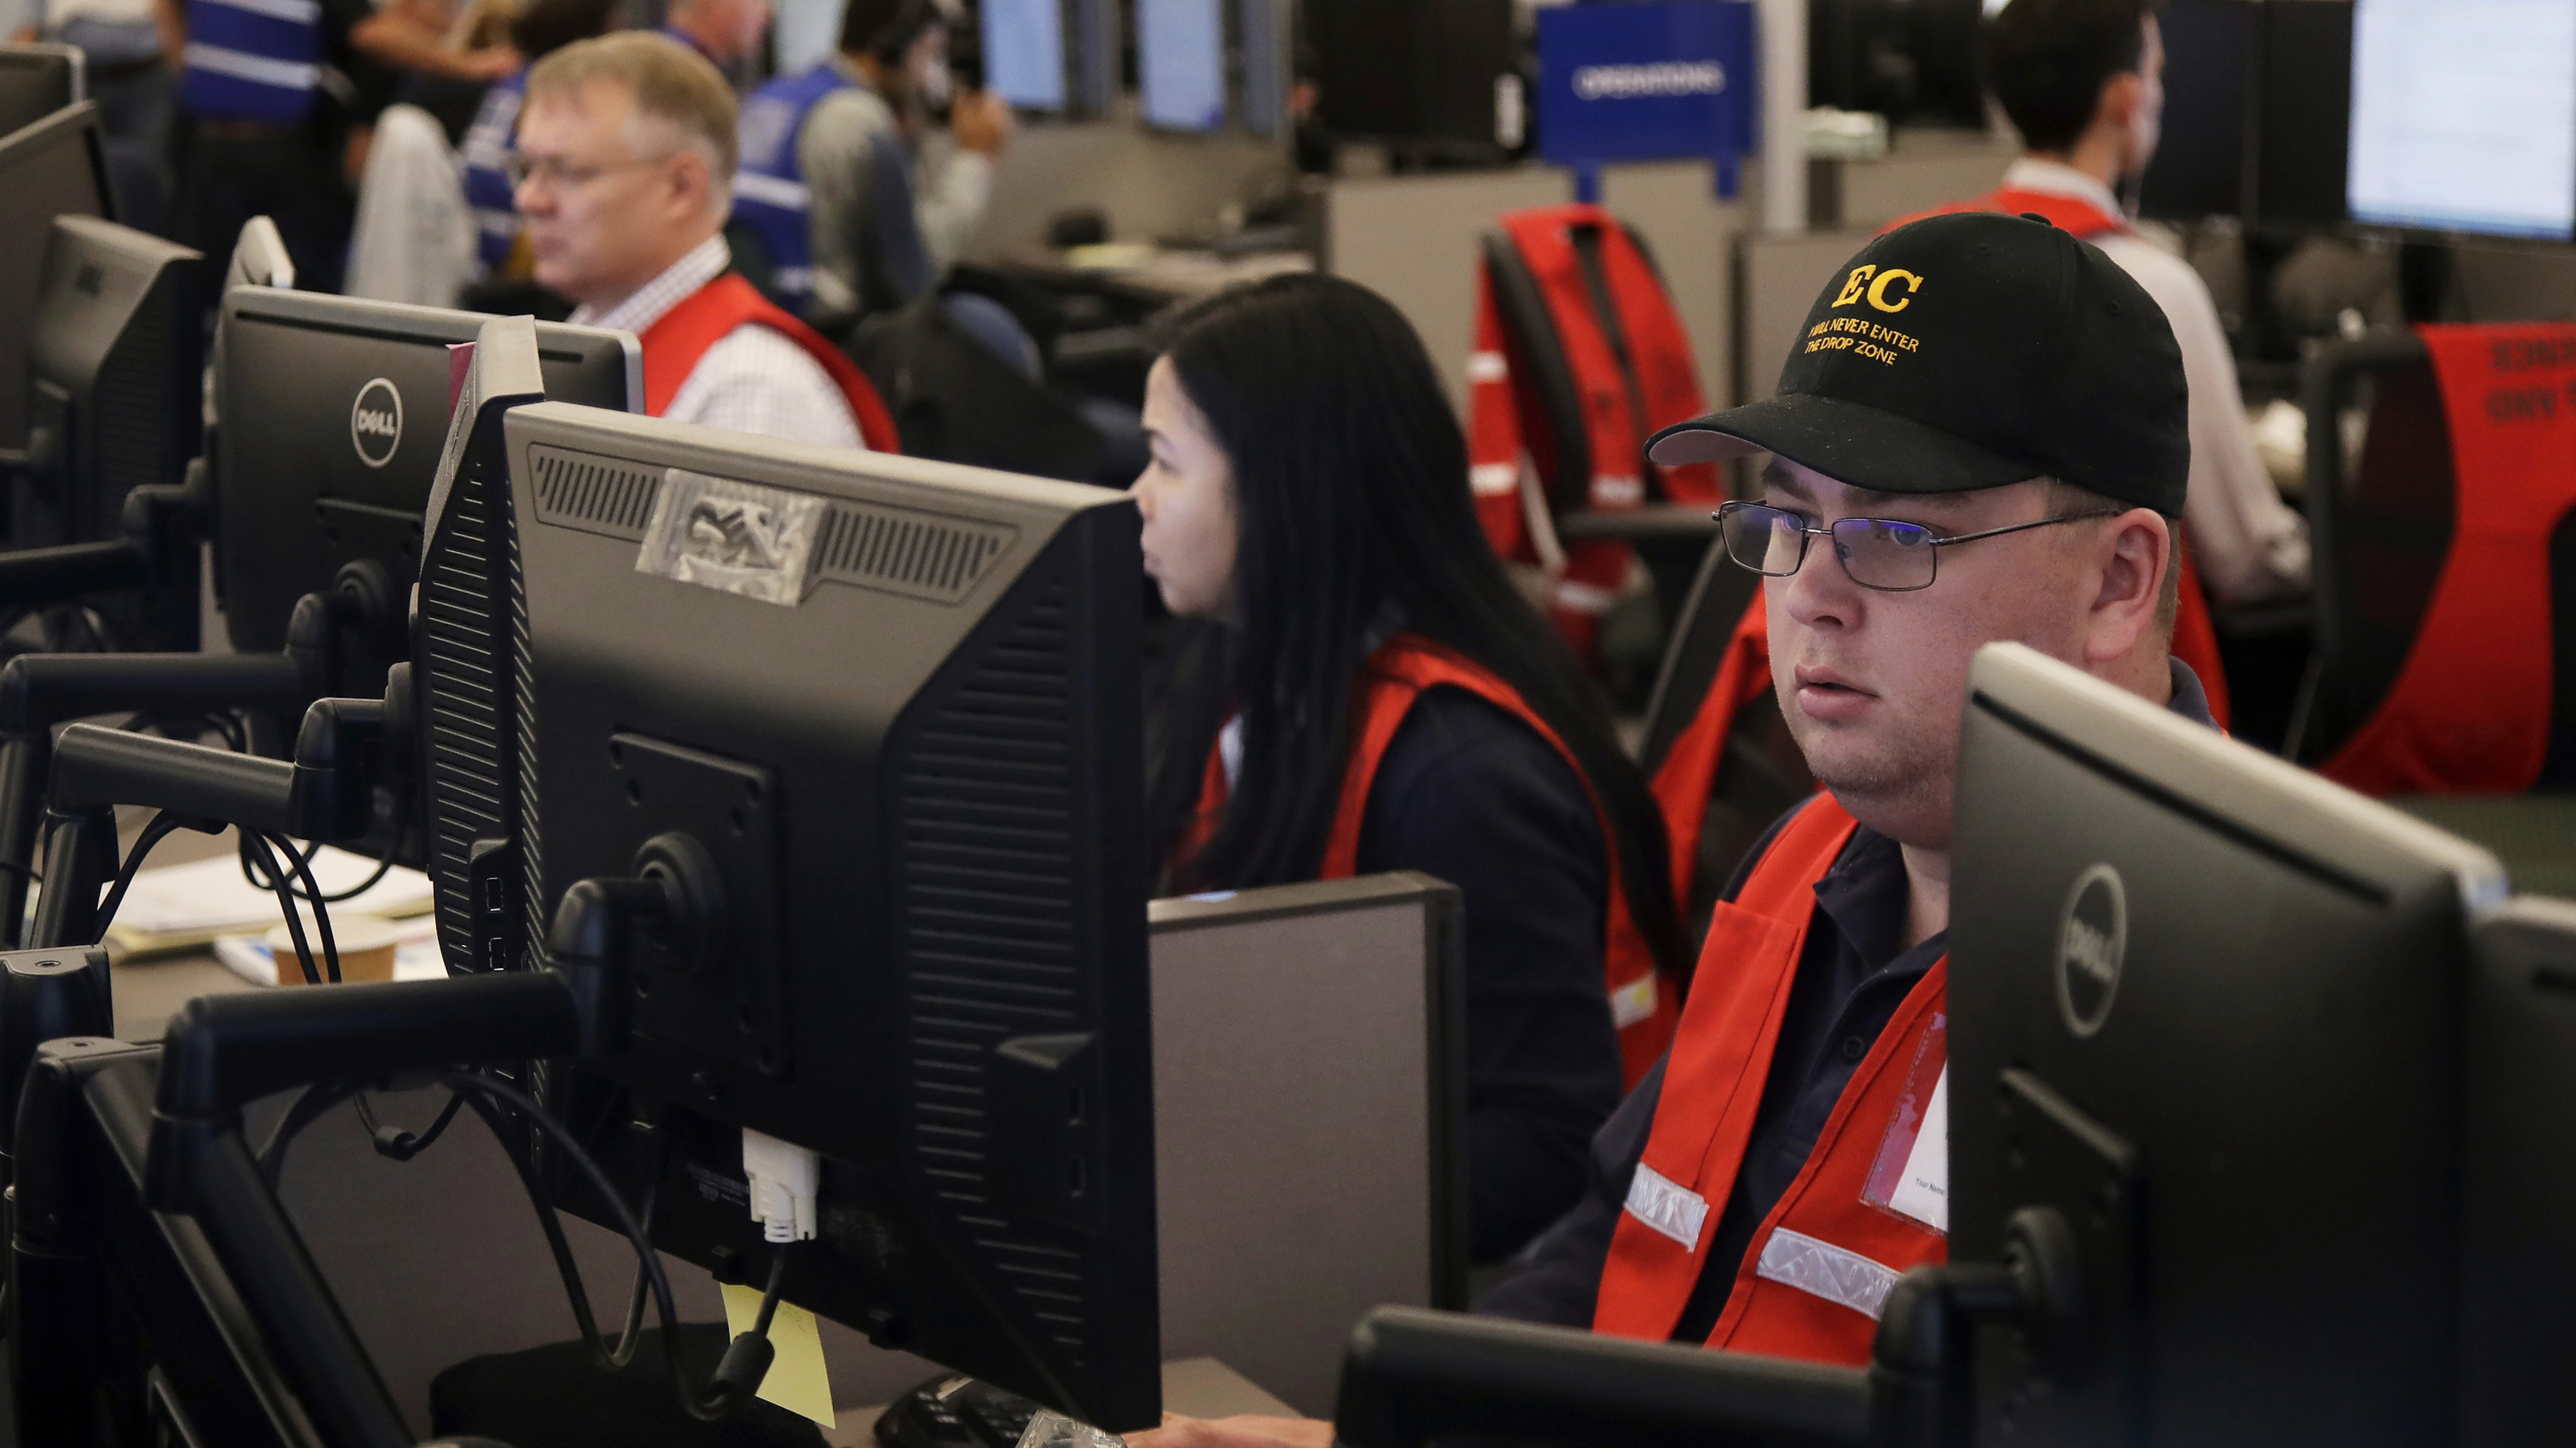 Pacific Gas & Electric employees work in the PG&E Emergency Operations Center in San Francisco. Authorities say power outages have started again in parts of Northern California.